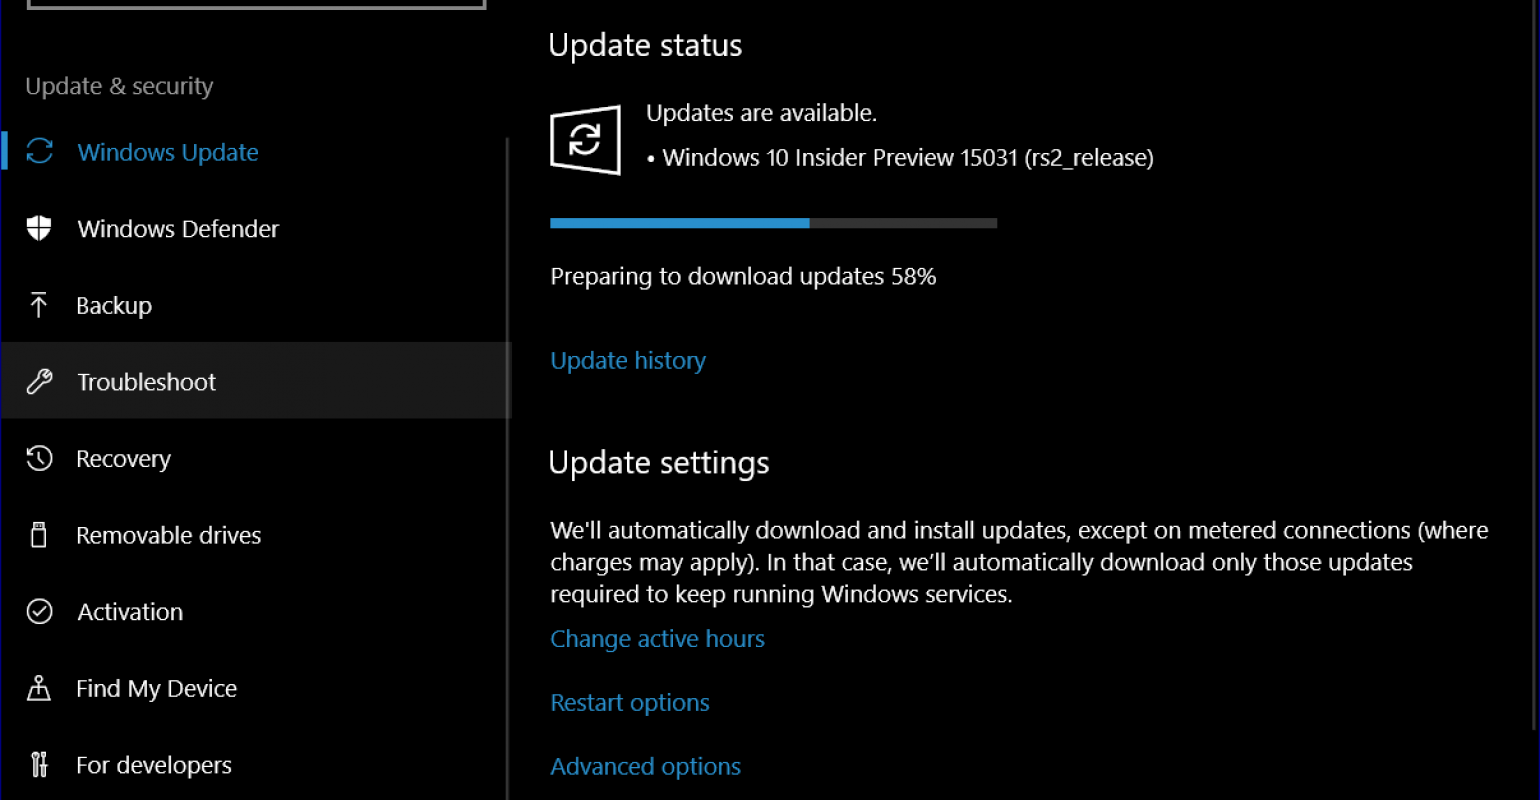 Windows 10 | The latest build of the next major update to